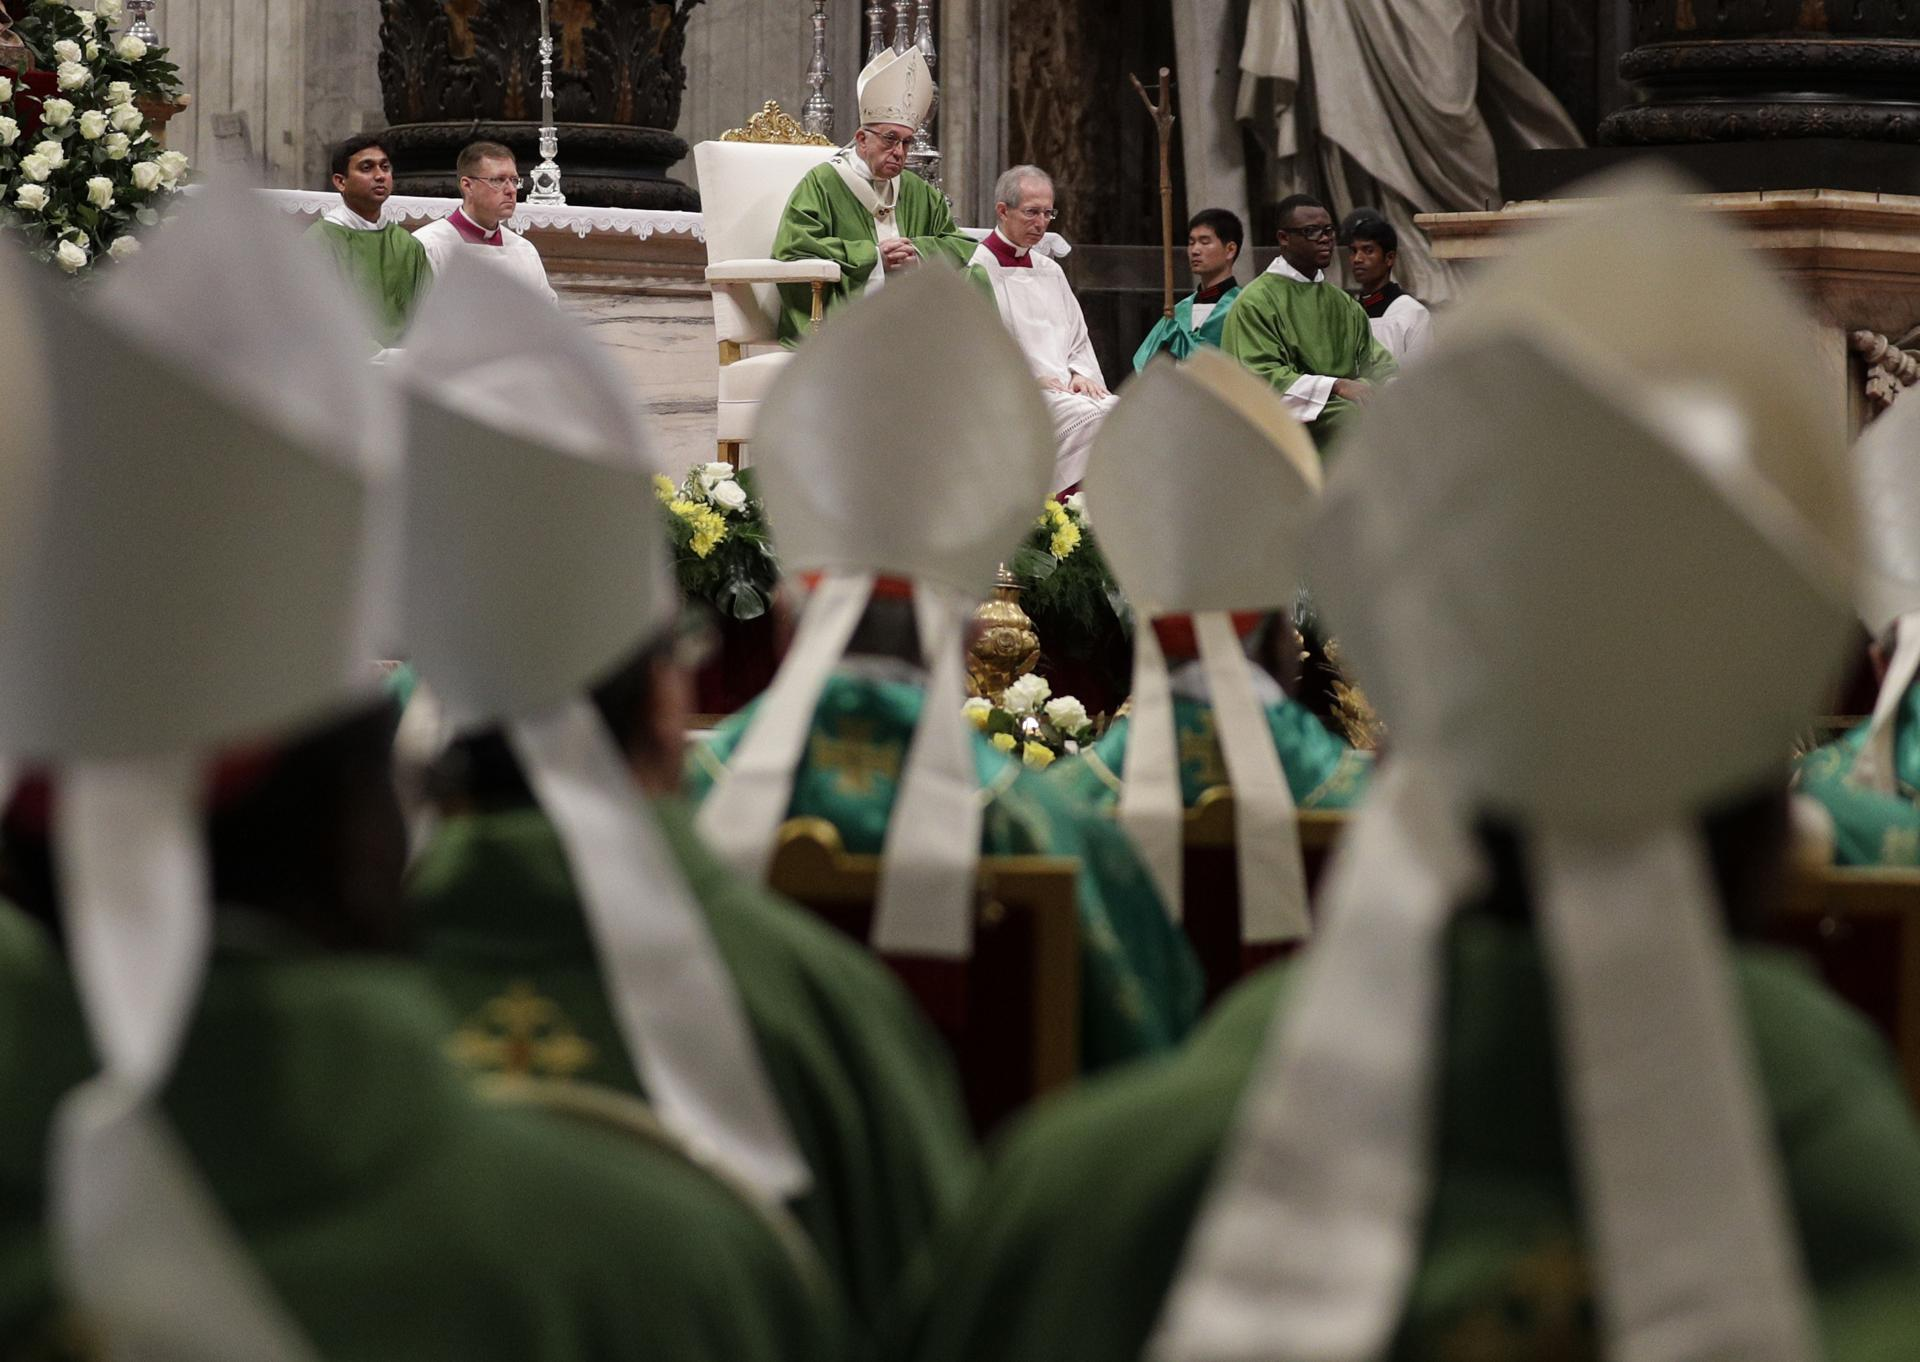 Pope Francis celebrated a Mass for the closing of the synod of bishops in St. Peter's Basilica at the Vatican on Sunday